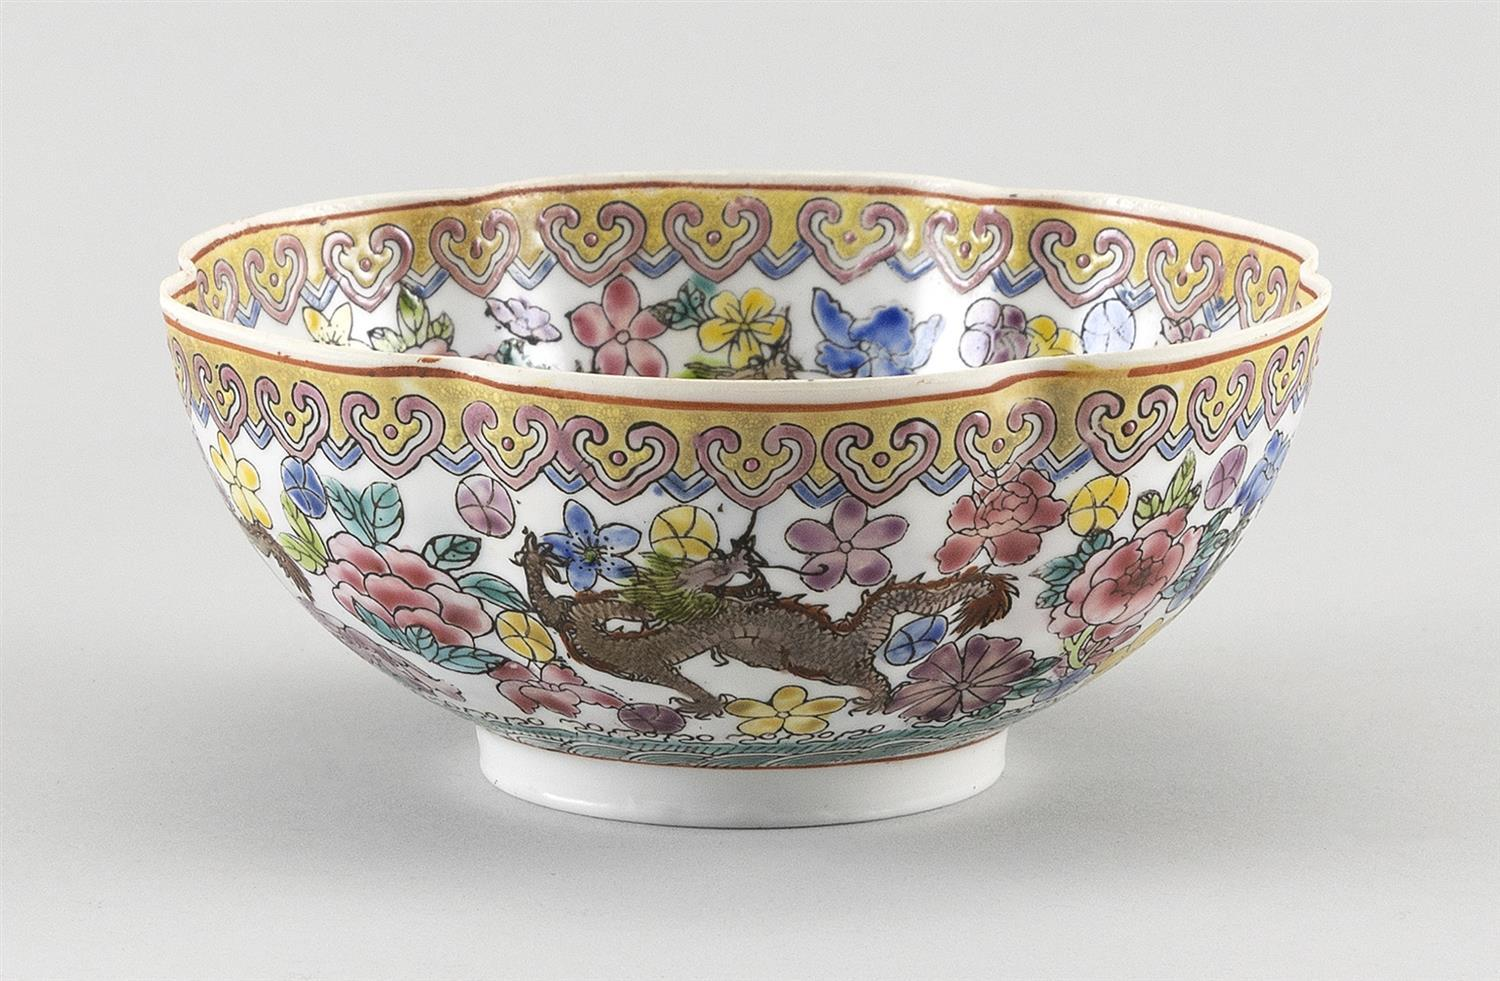 CHINESE FAMILLE ROSE EGGSHELL PORCELAIN BOWL Floriform, with decoration of five-clawed dragons and flowers on a white ground with la...